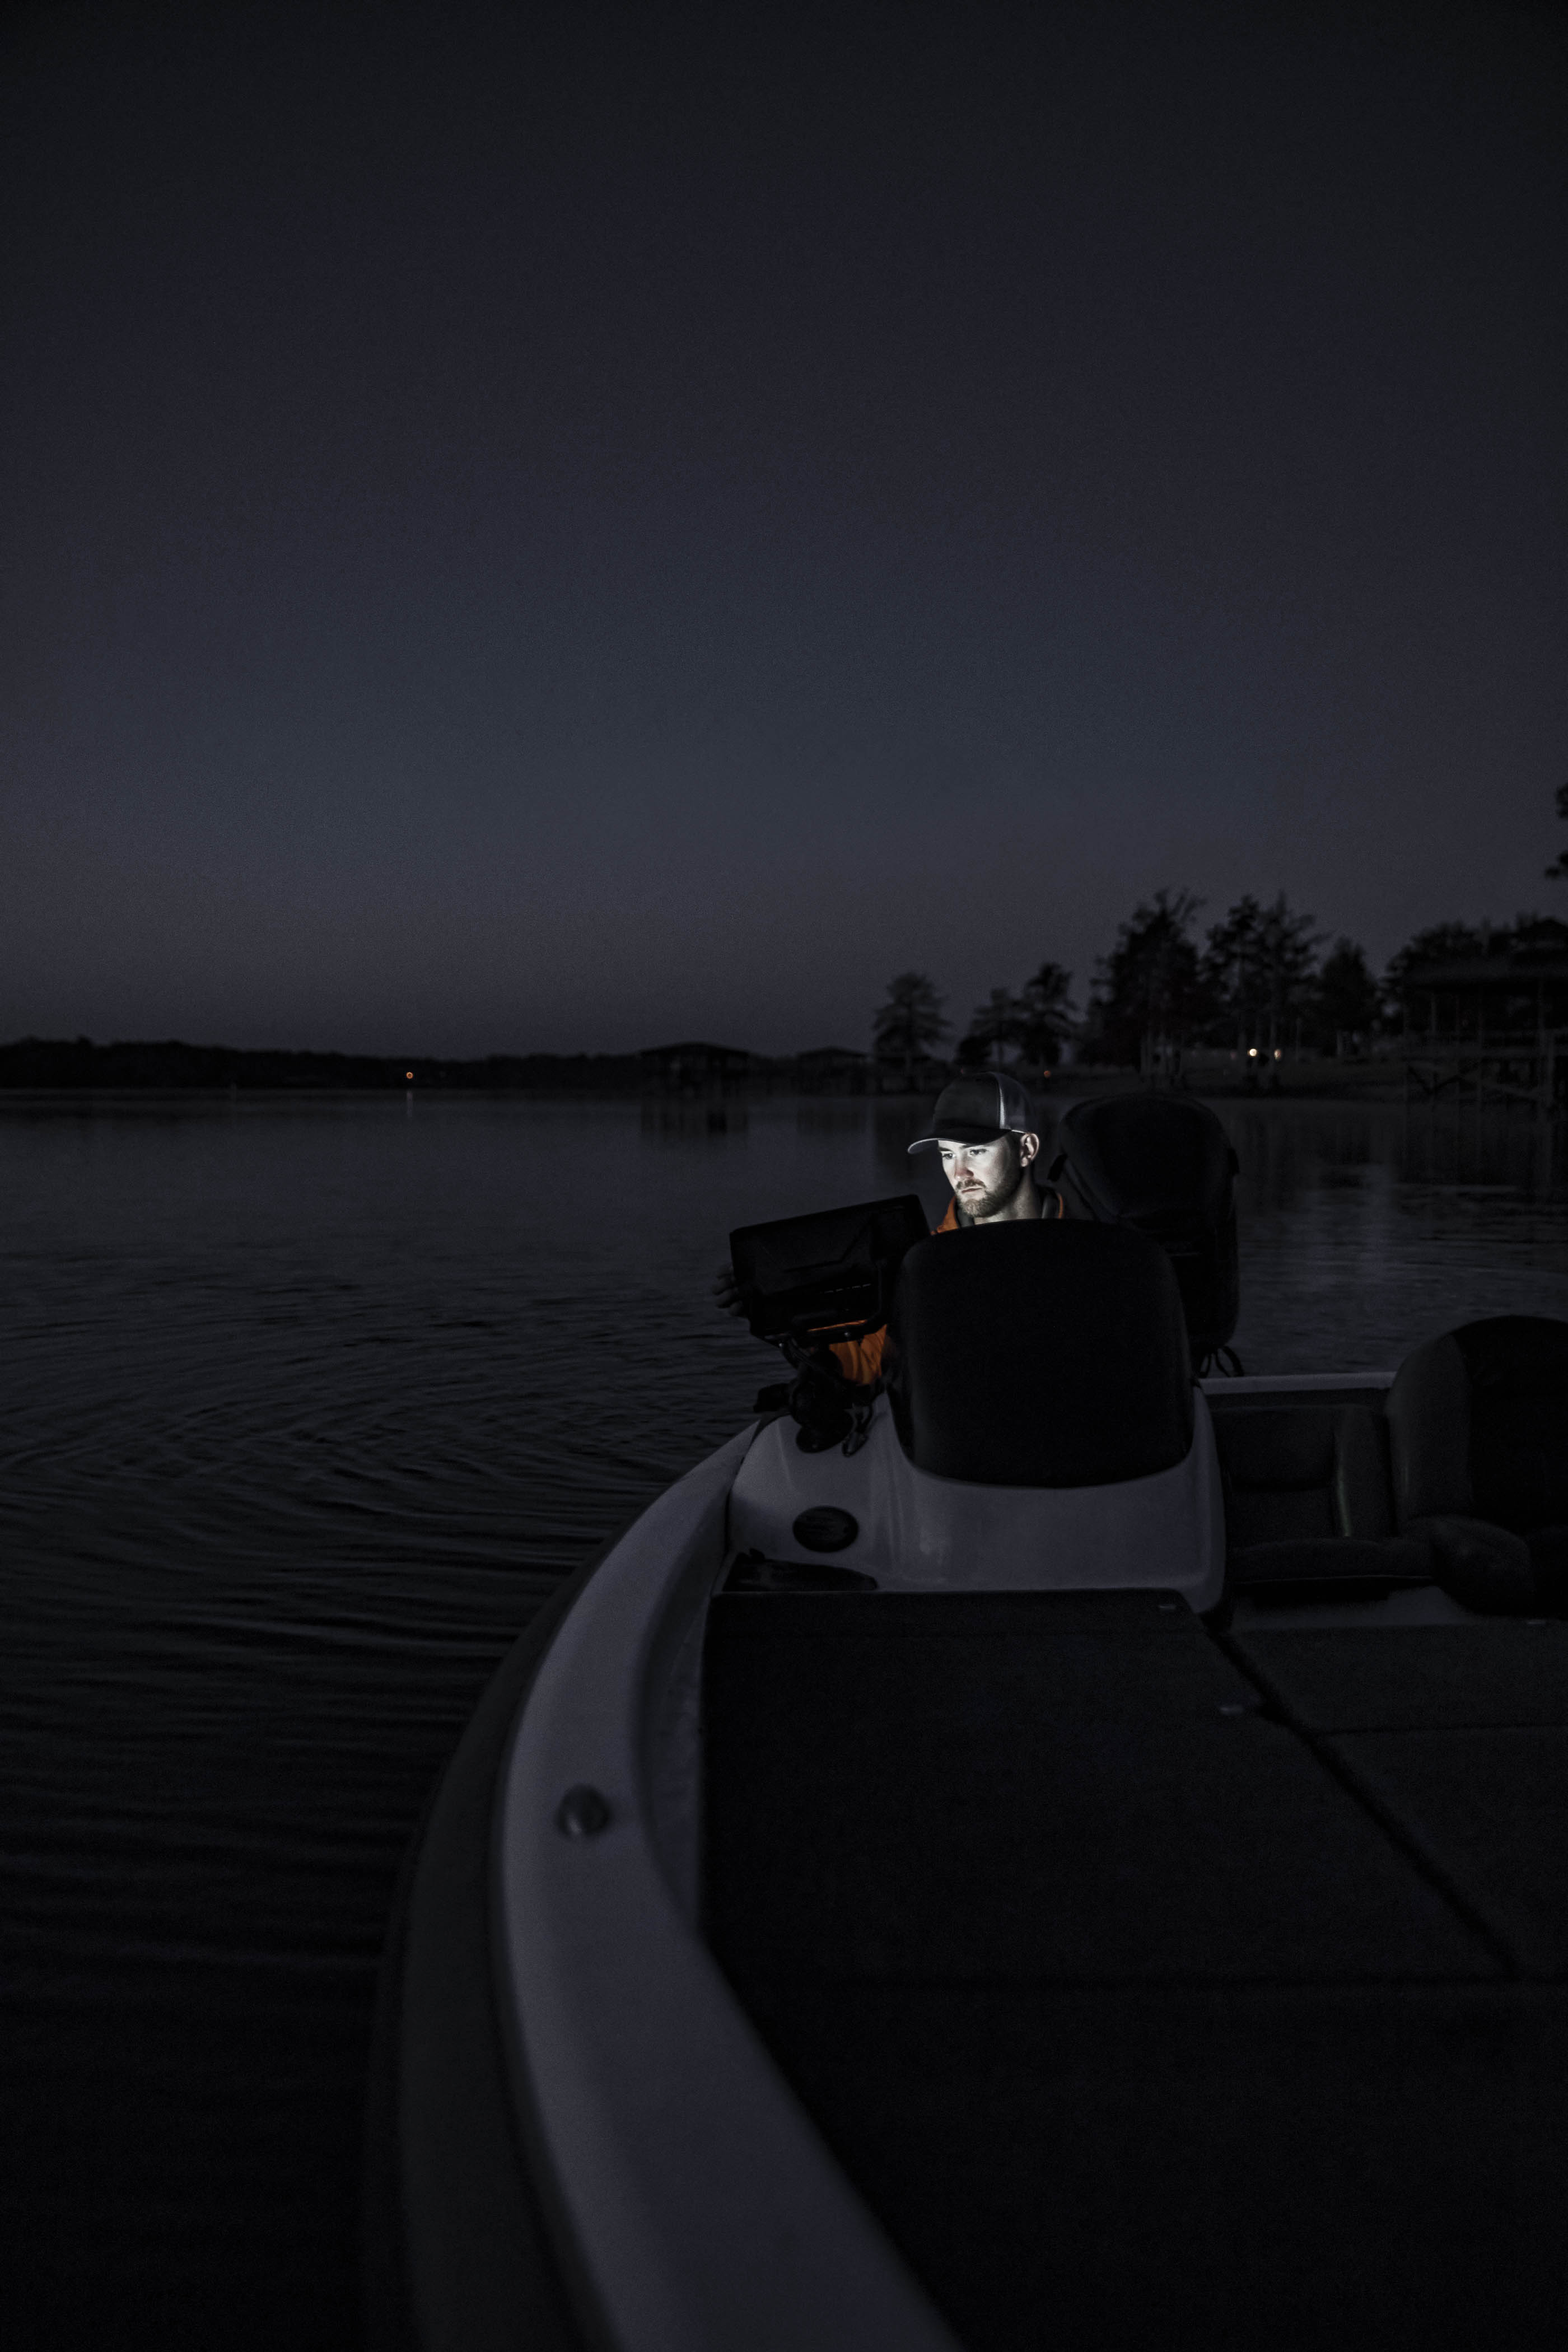 Rebel_ToledoBend_Day2_0082-Edit